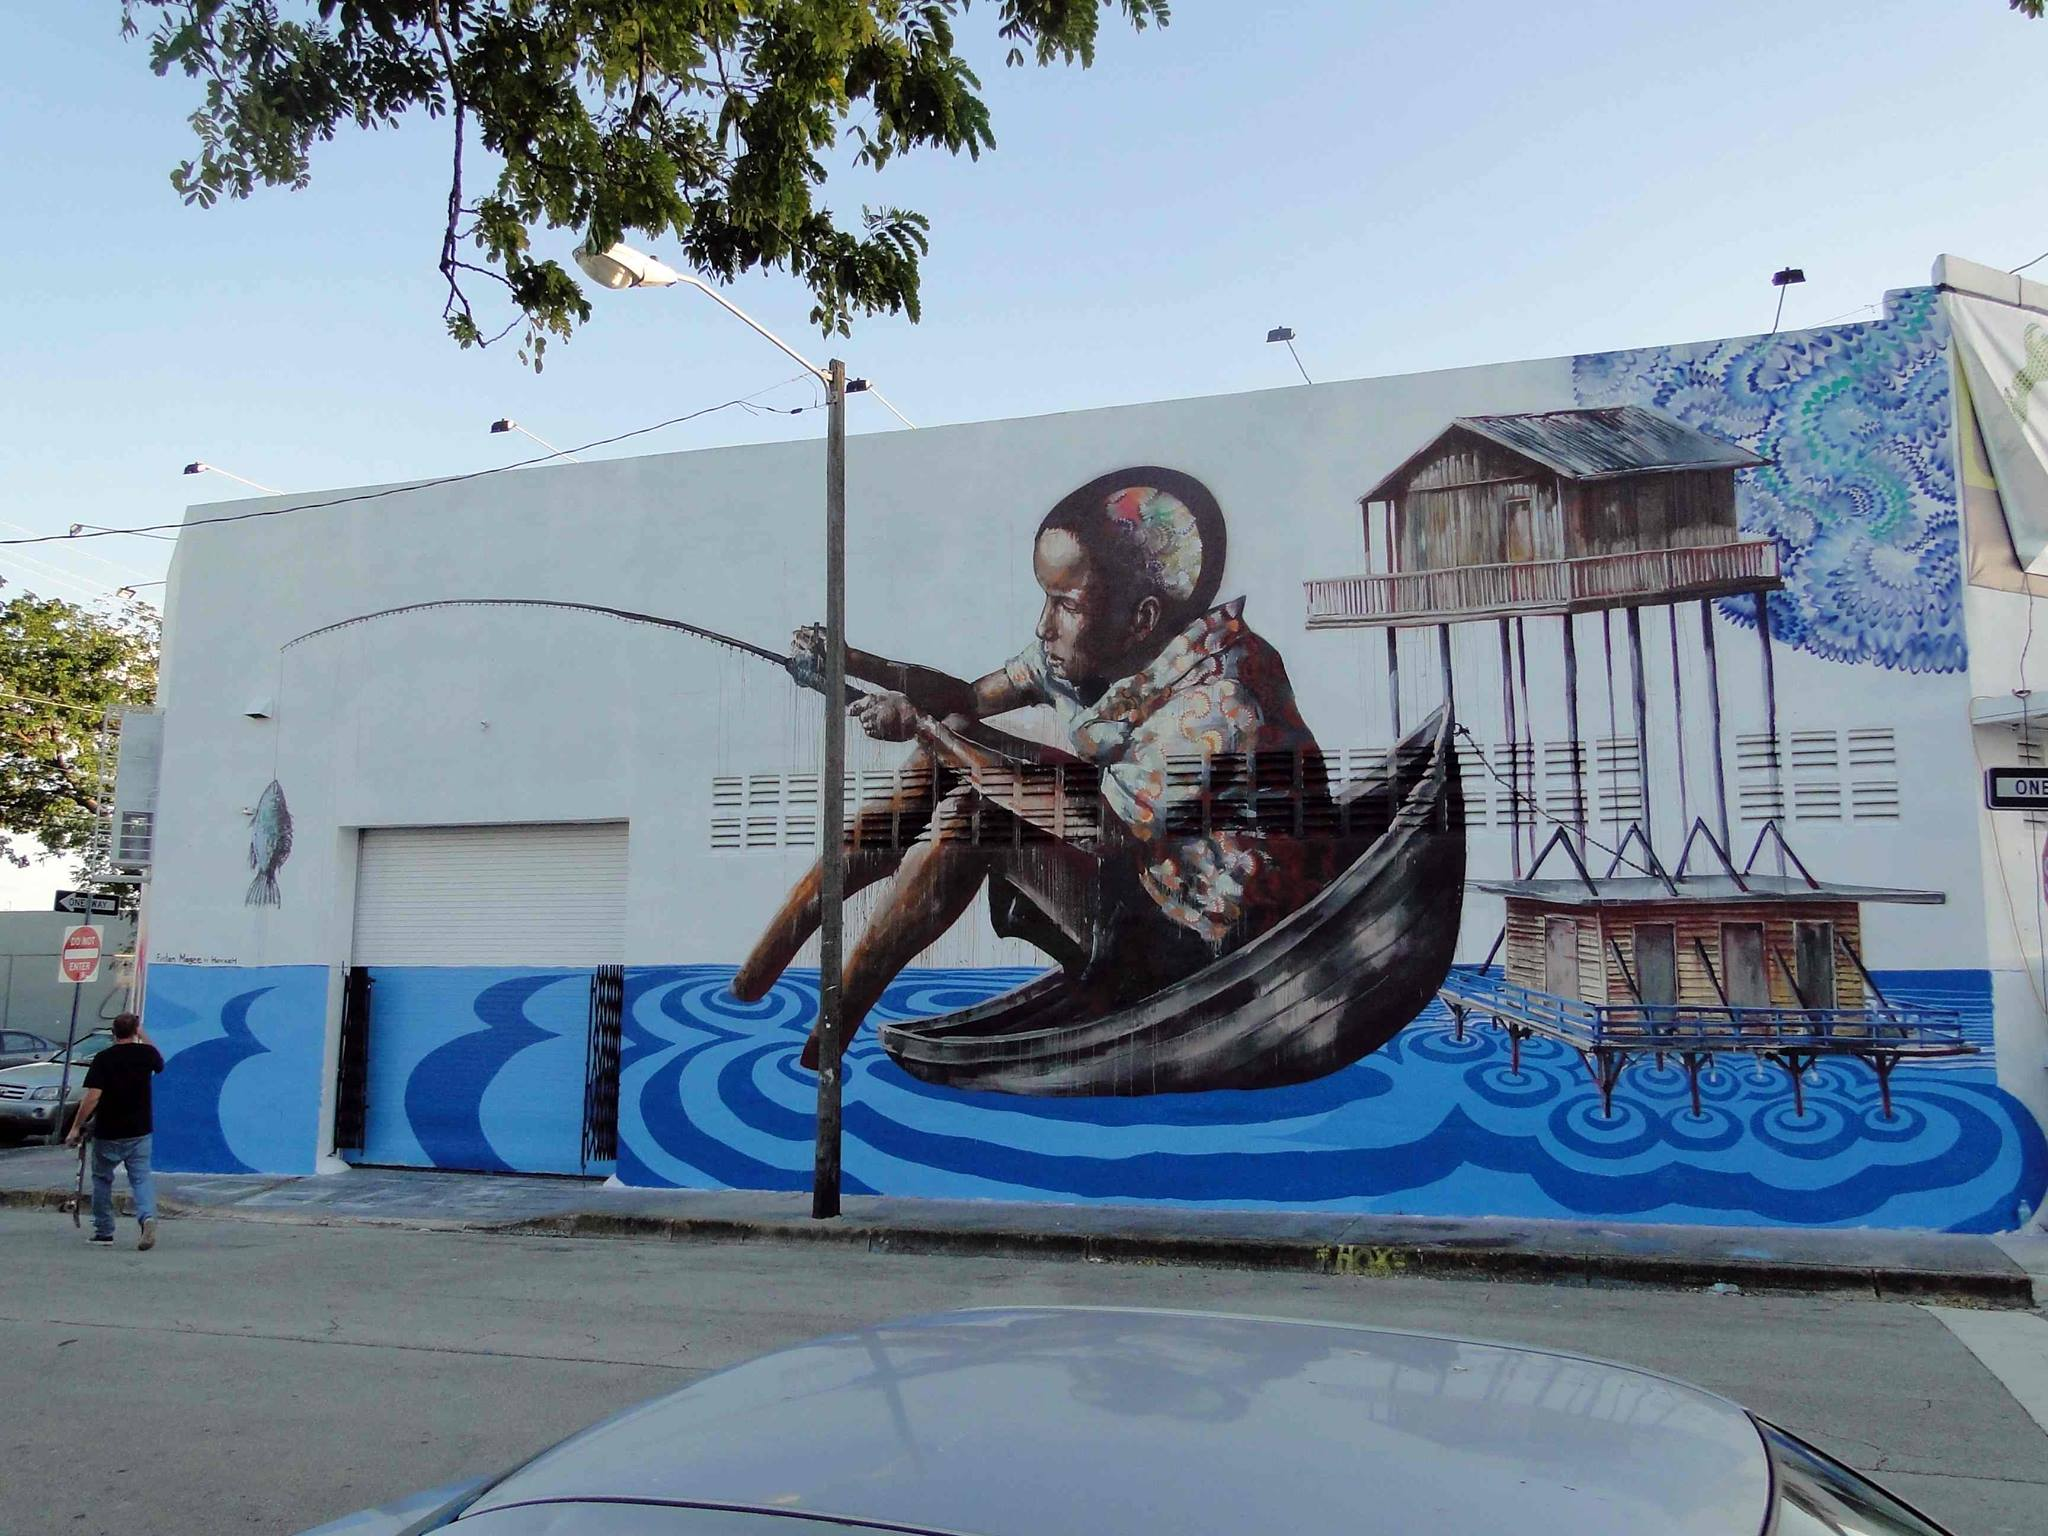 Mural collaboration, Miami